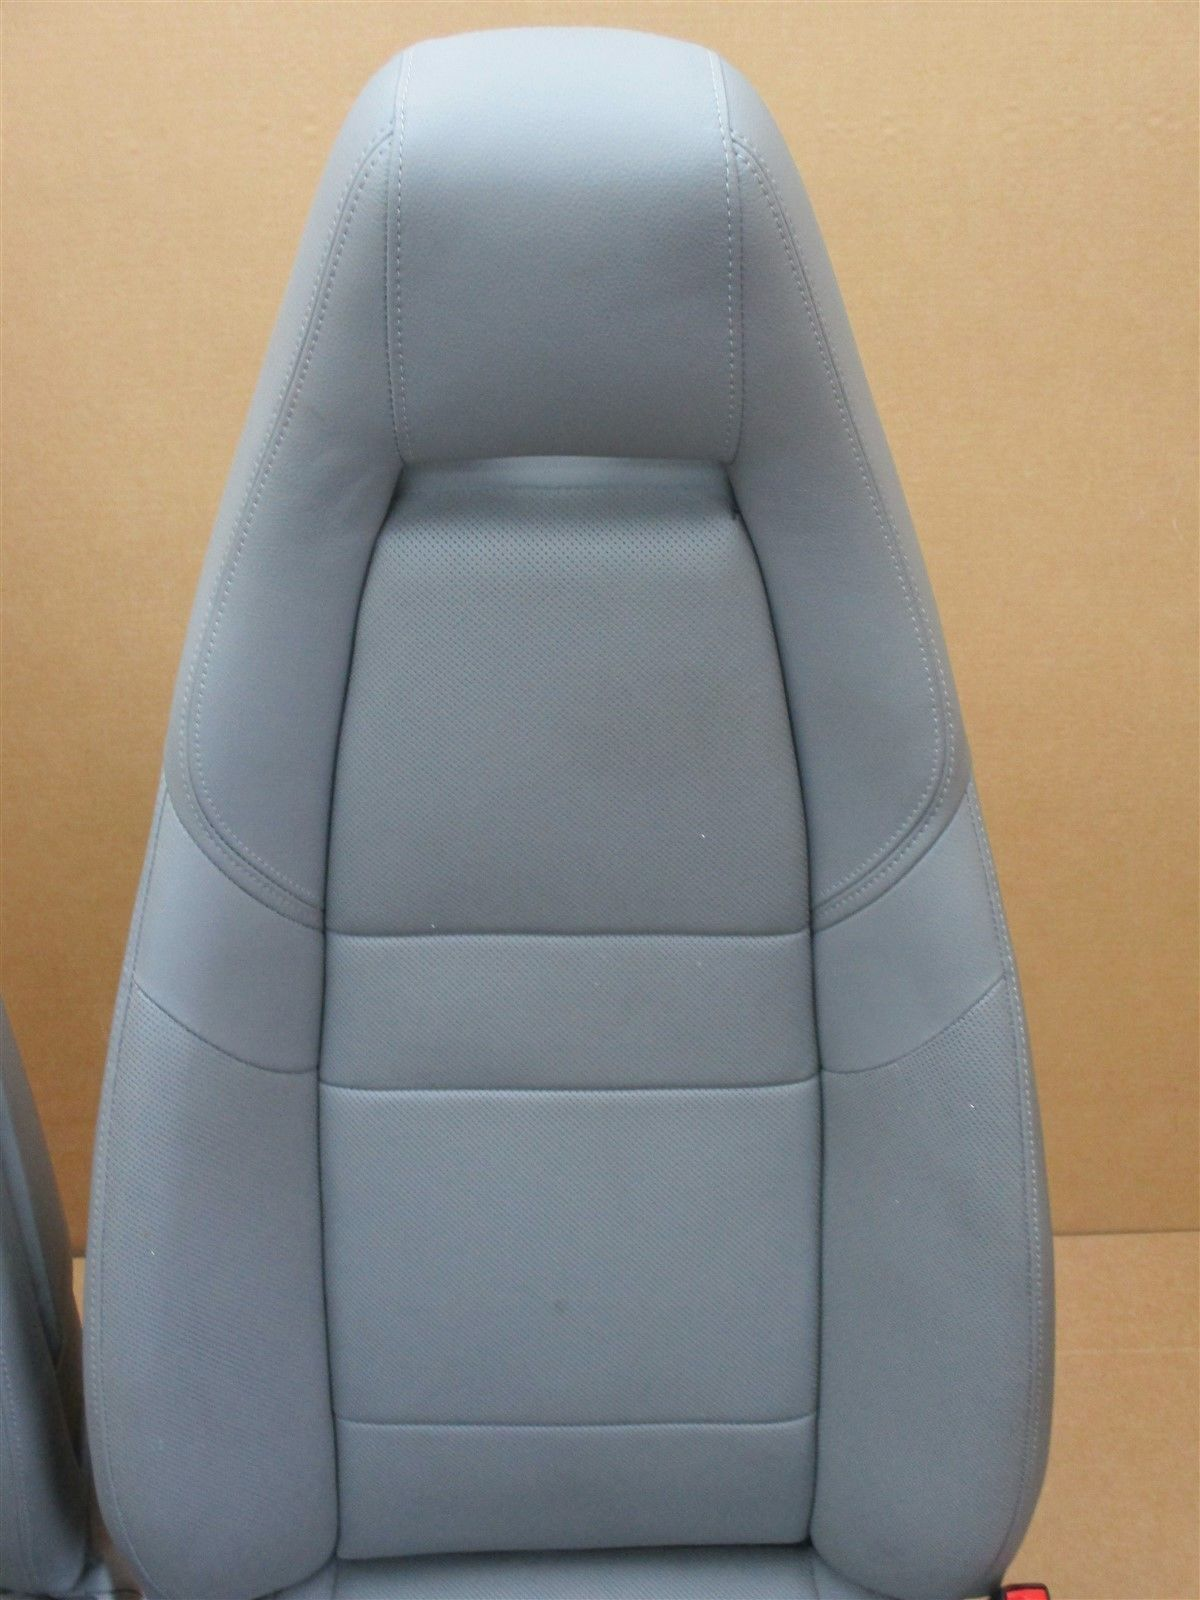 11 Panamera S RWD 970 Porsche L R FRONT 14-WAY SEATS Gray LEFT RIGHT 65,170